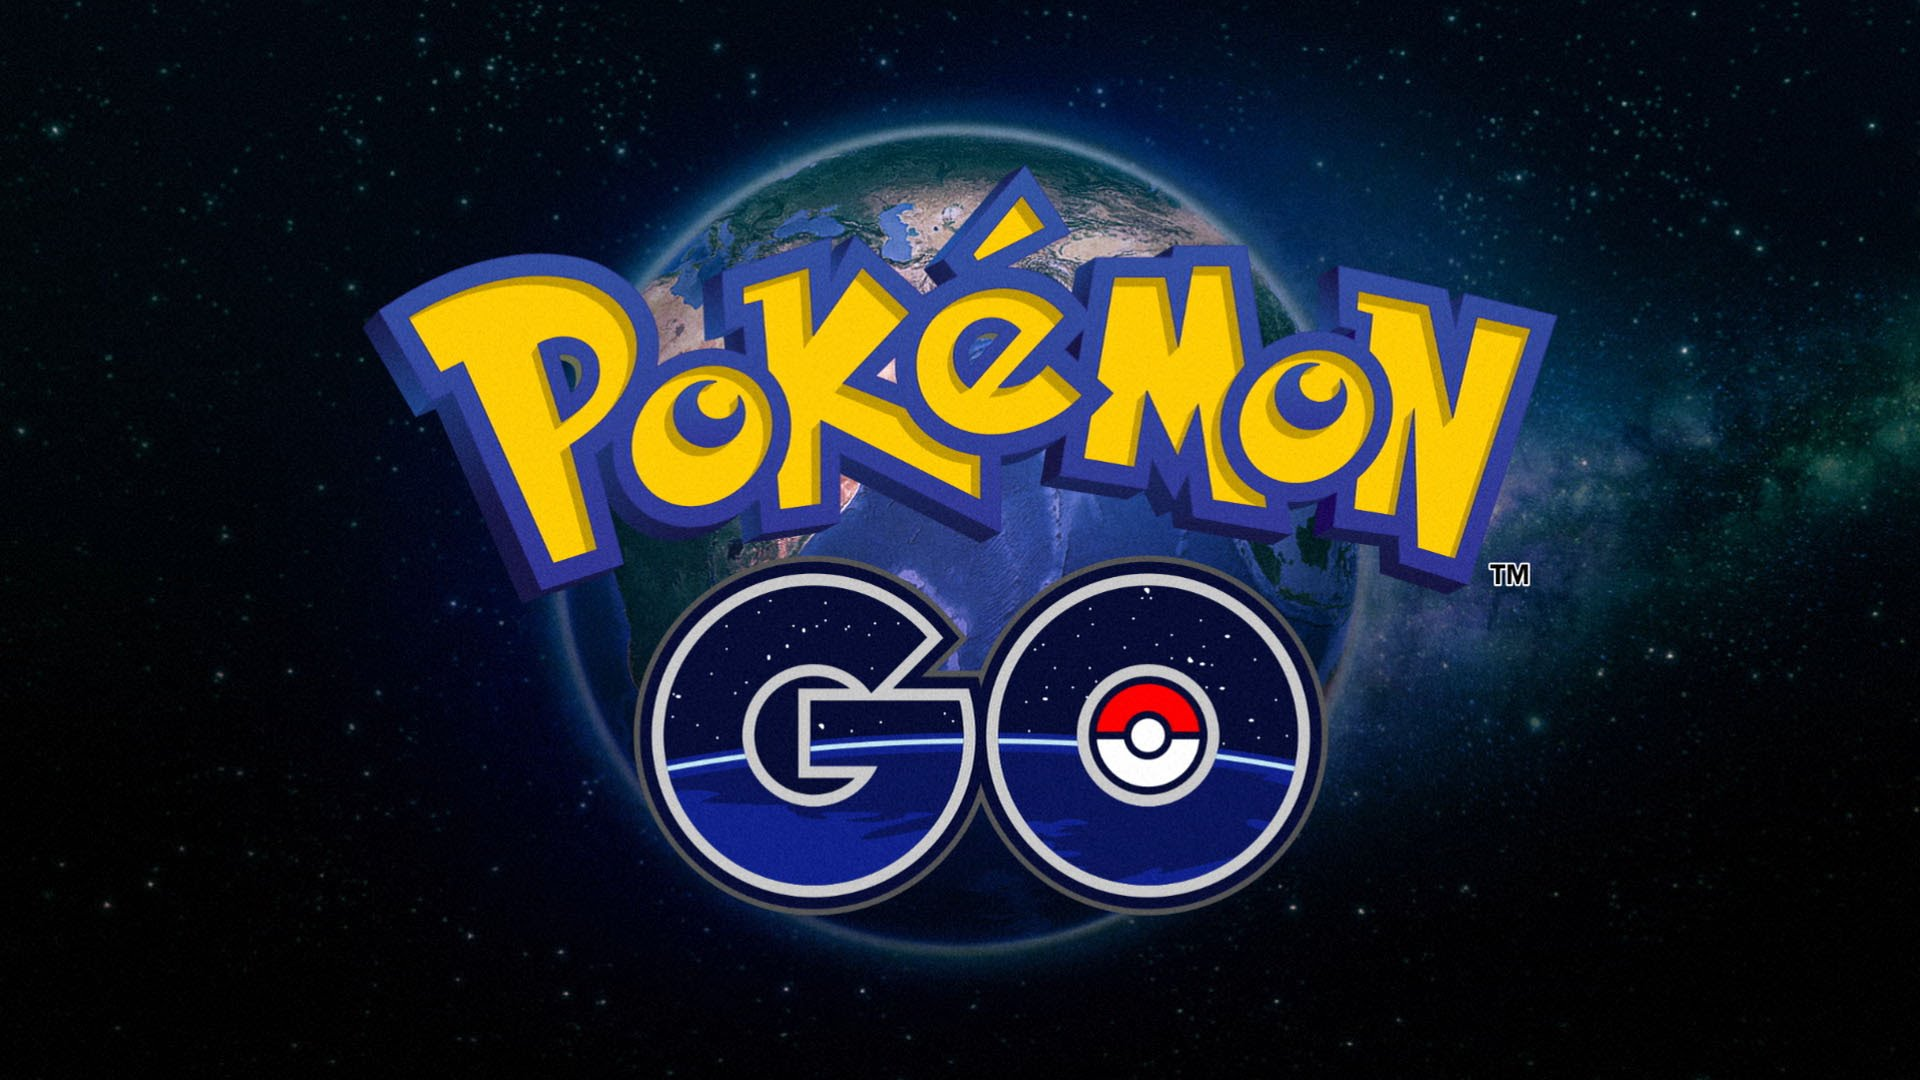 Modojo | Pokemon Go Gym Overhaul Could Arrive This Week